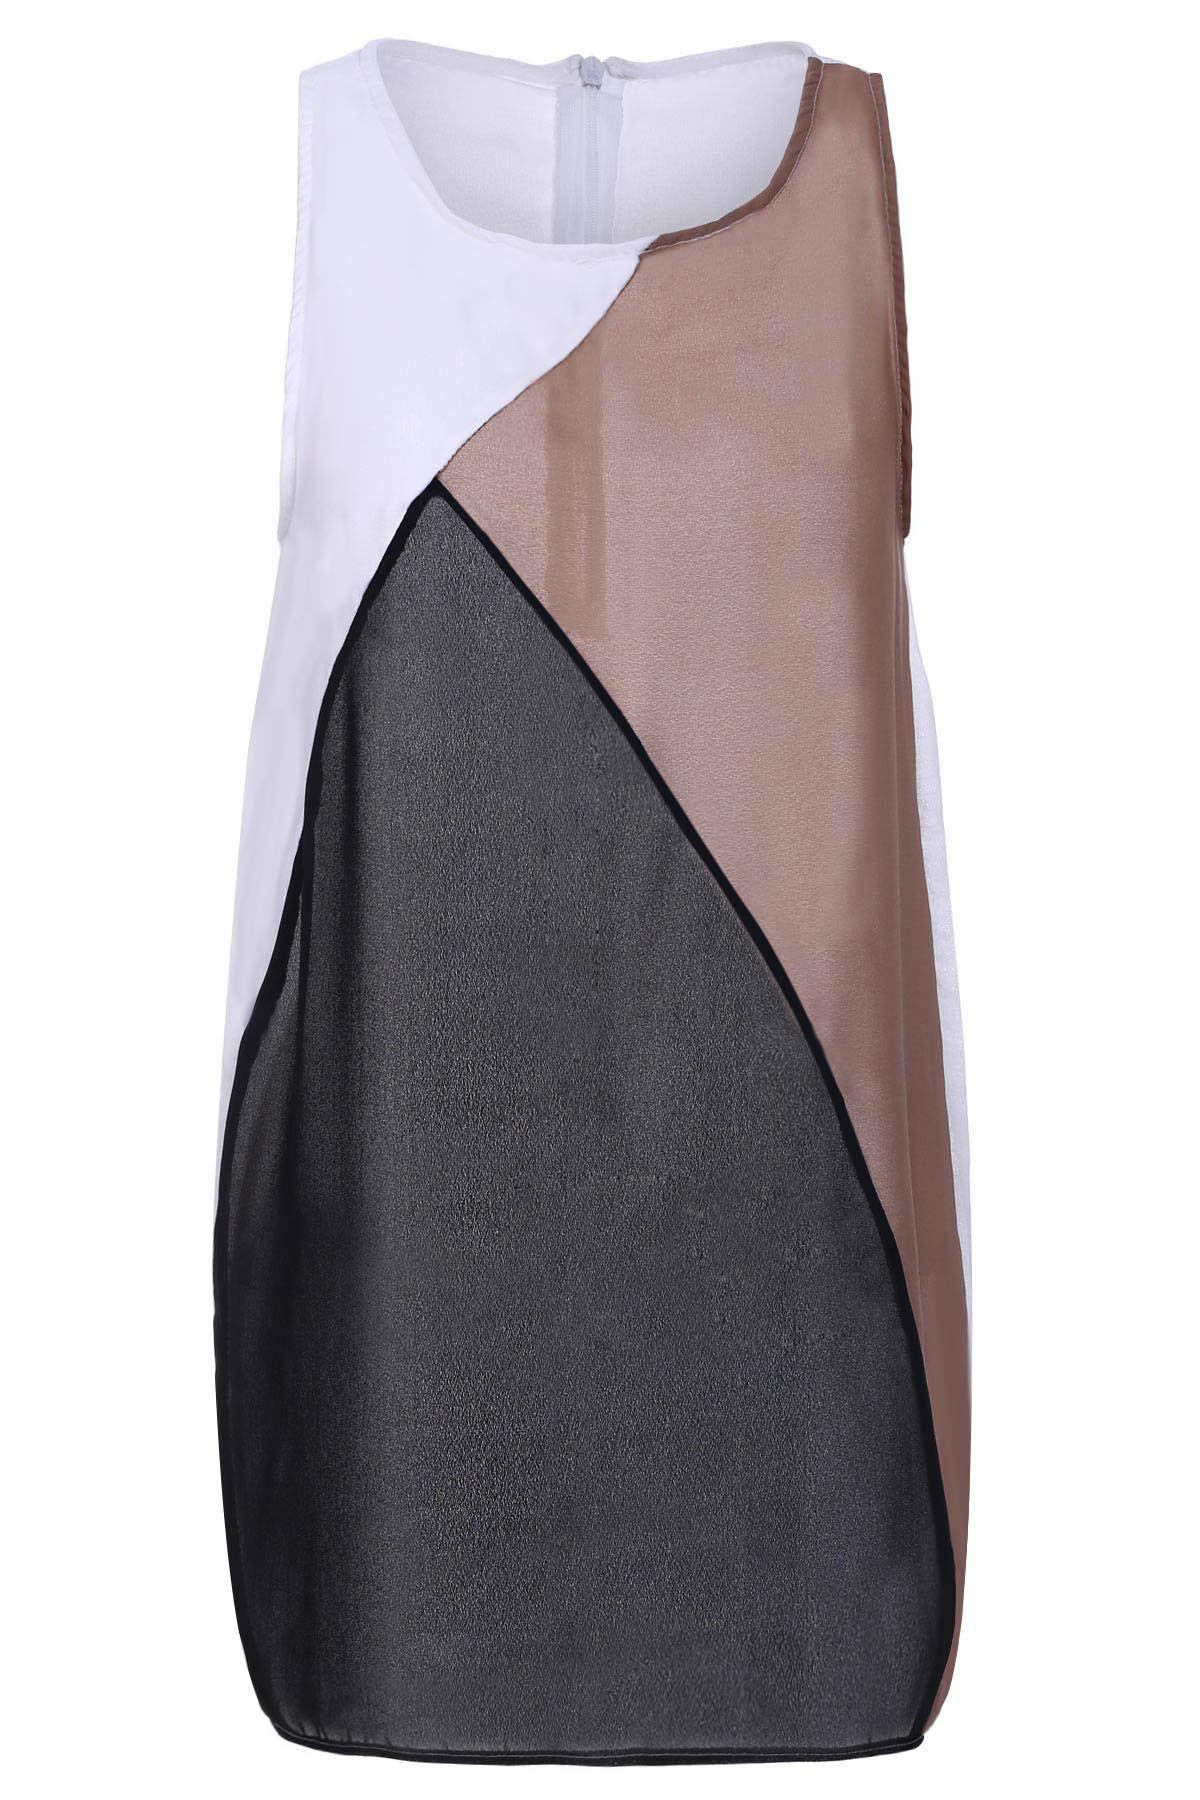 Elegant Round Collar Sleeveless Color Block Bodycon Dress For Women